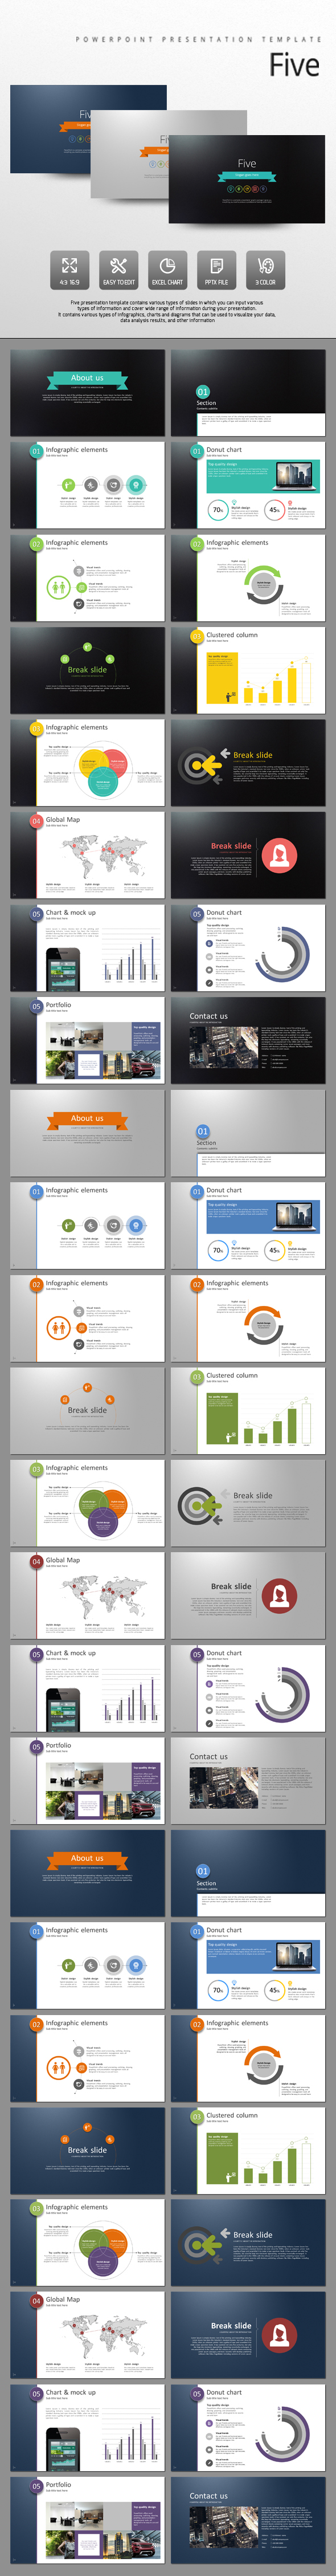 Five - PowerPoint Templates Presentation Templates